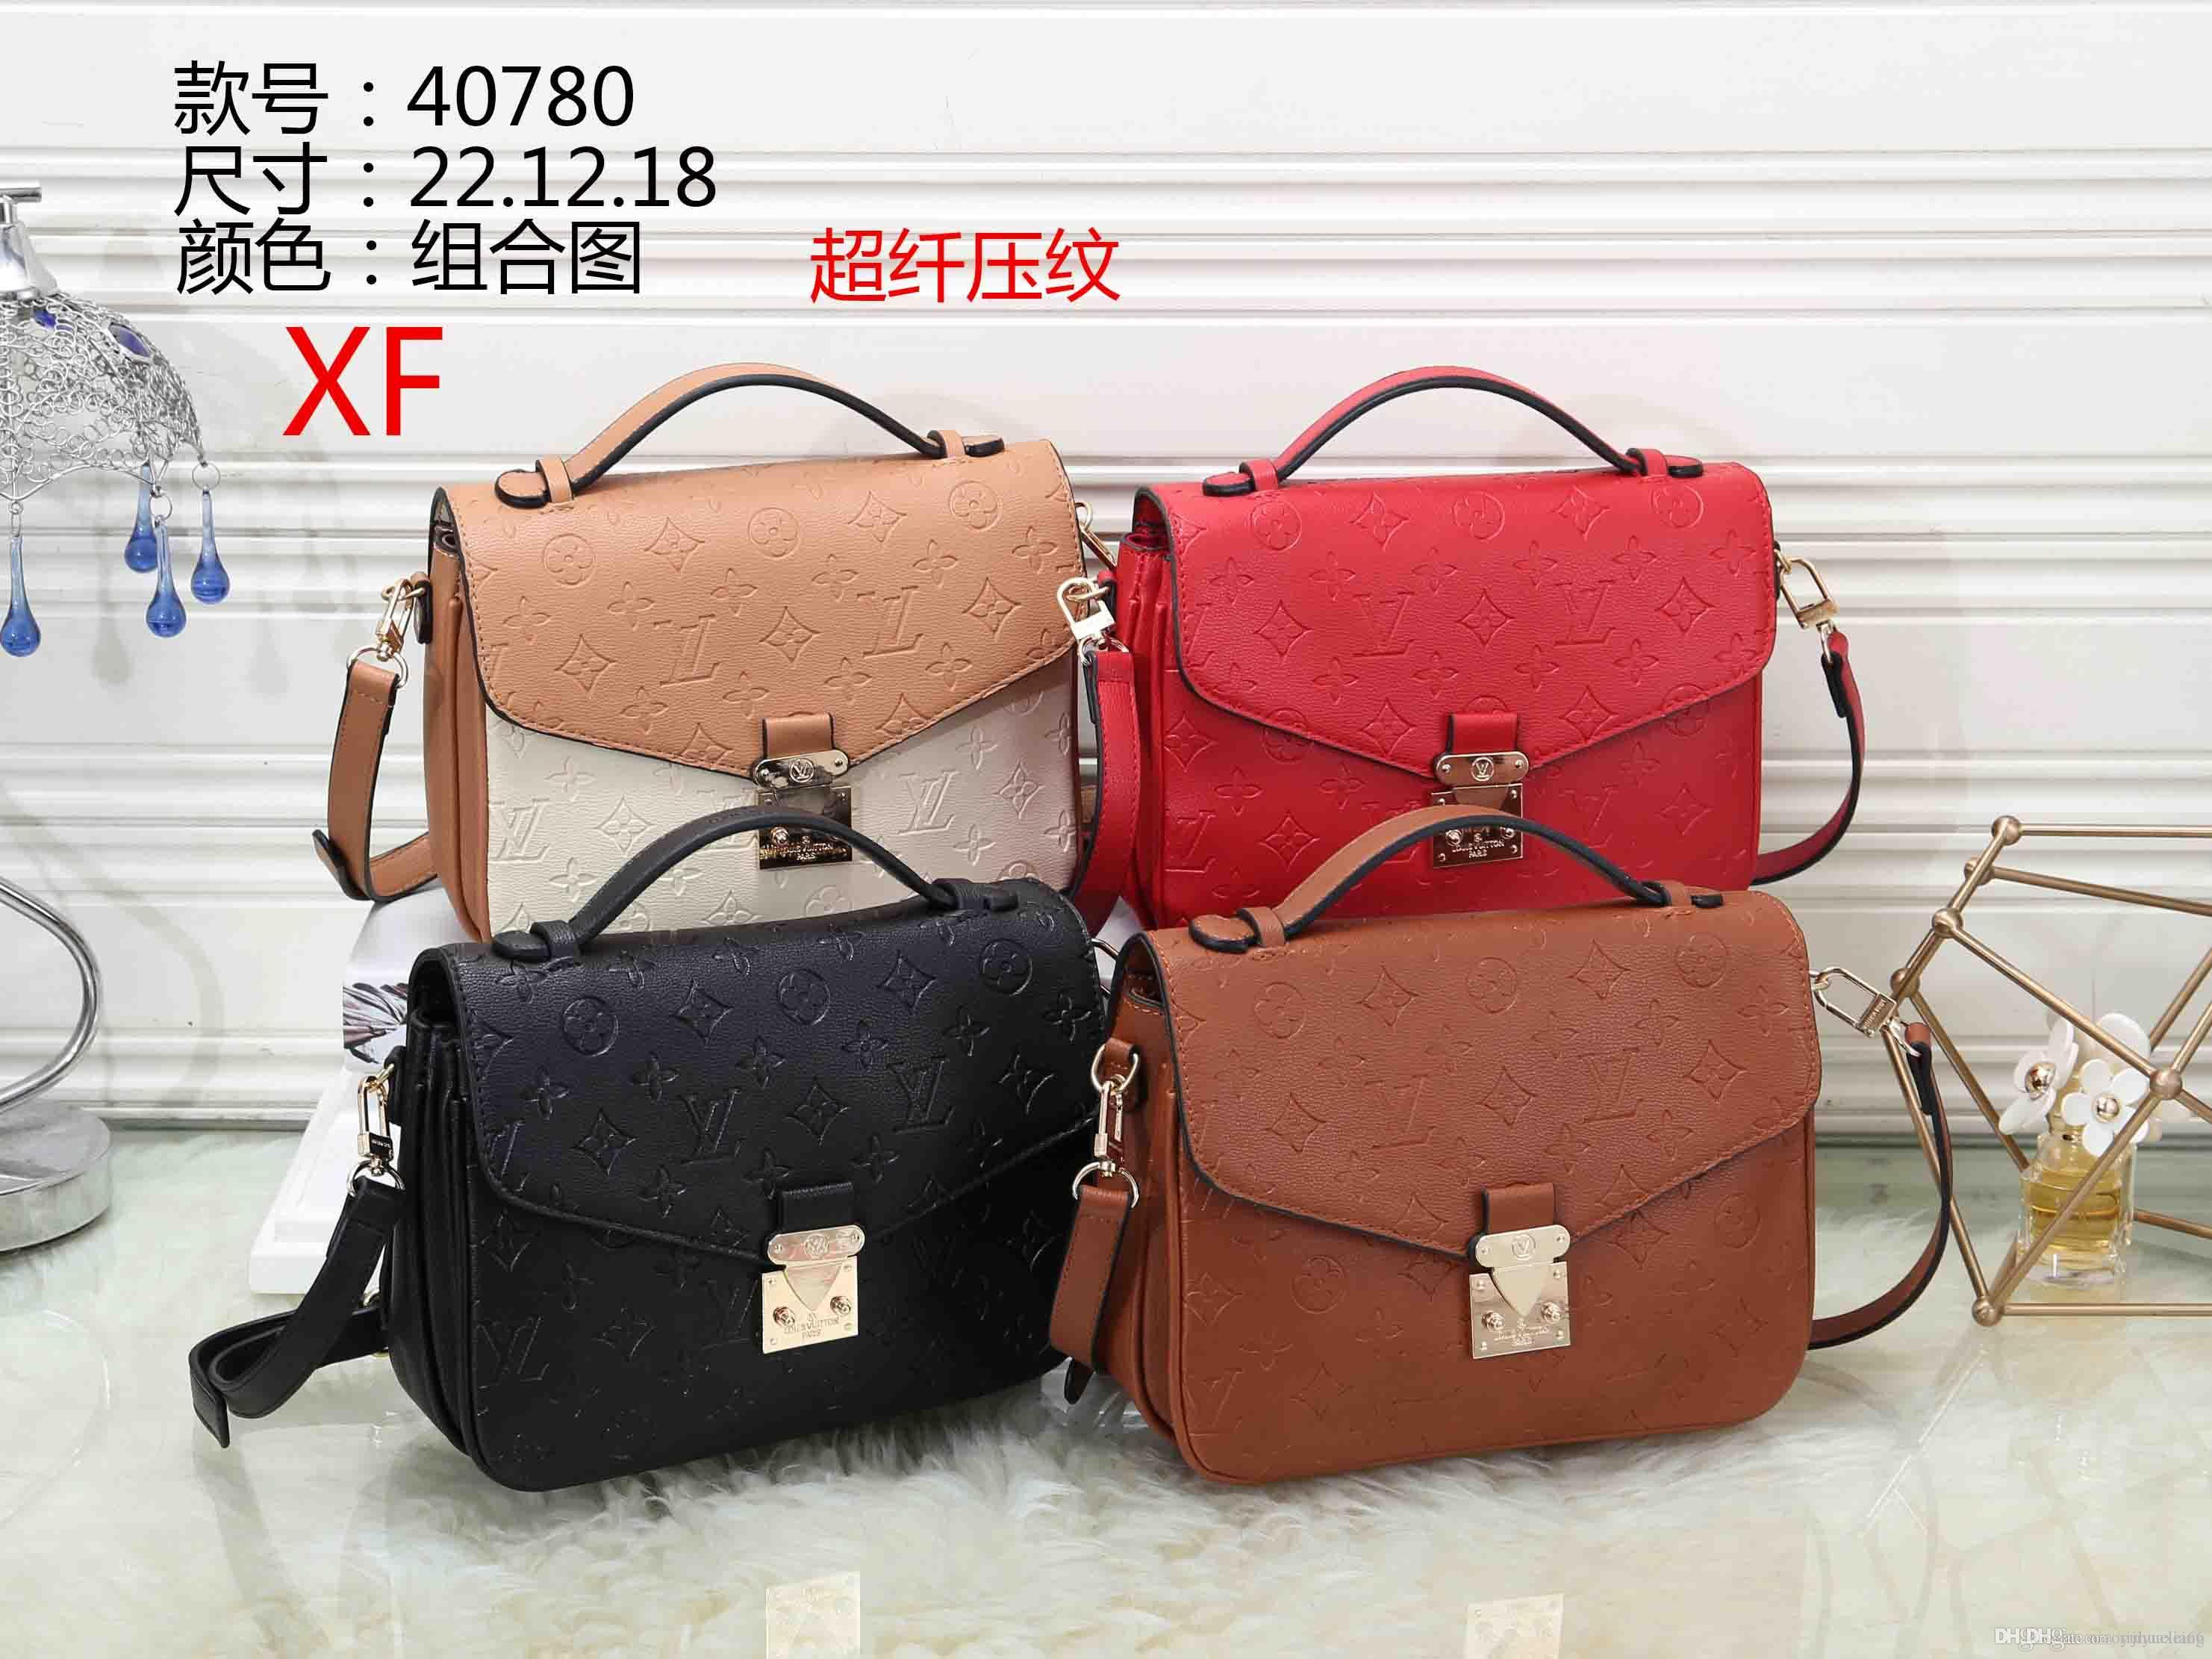 Lowest Price ! Classic PU Leather Black Golden Silver Chain Hot Sell Wholesale Retail New Bags Handbags Shoulder Bags Tote Bag Messenger